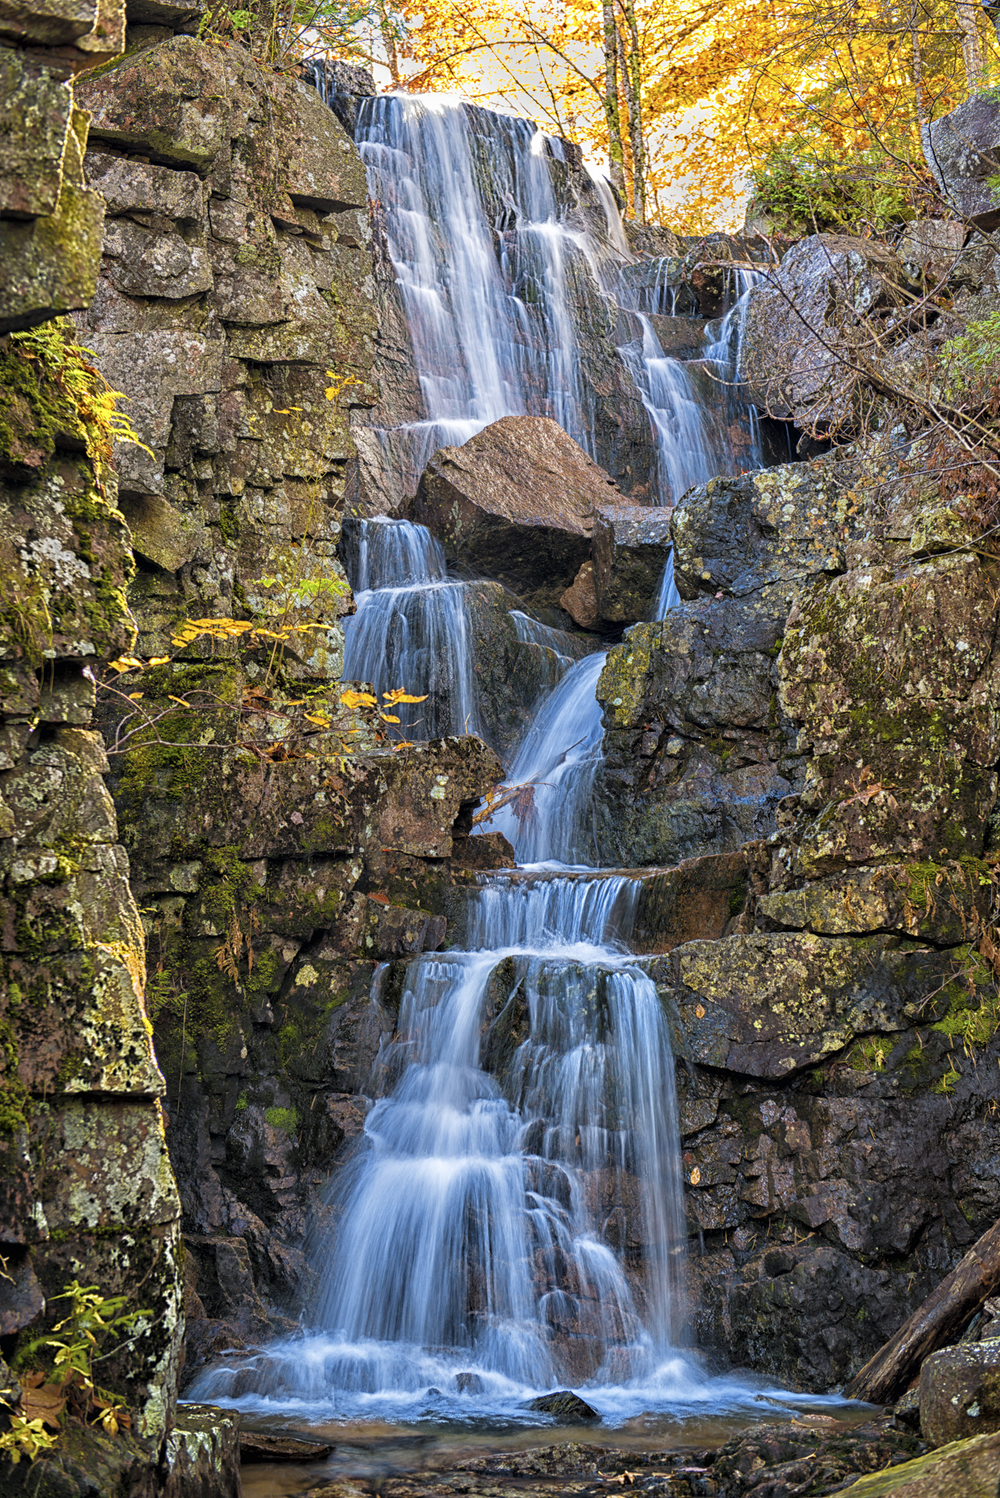 Chasm Brook Waterfalls, Acadia National Park, Maine